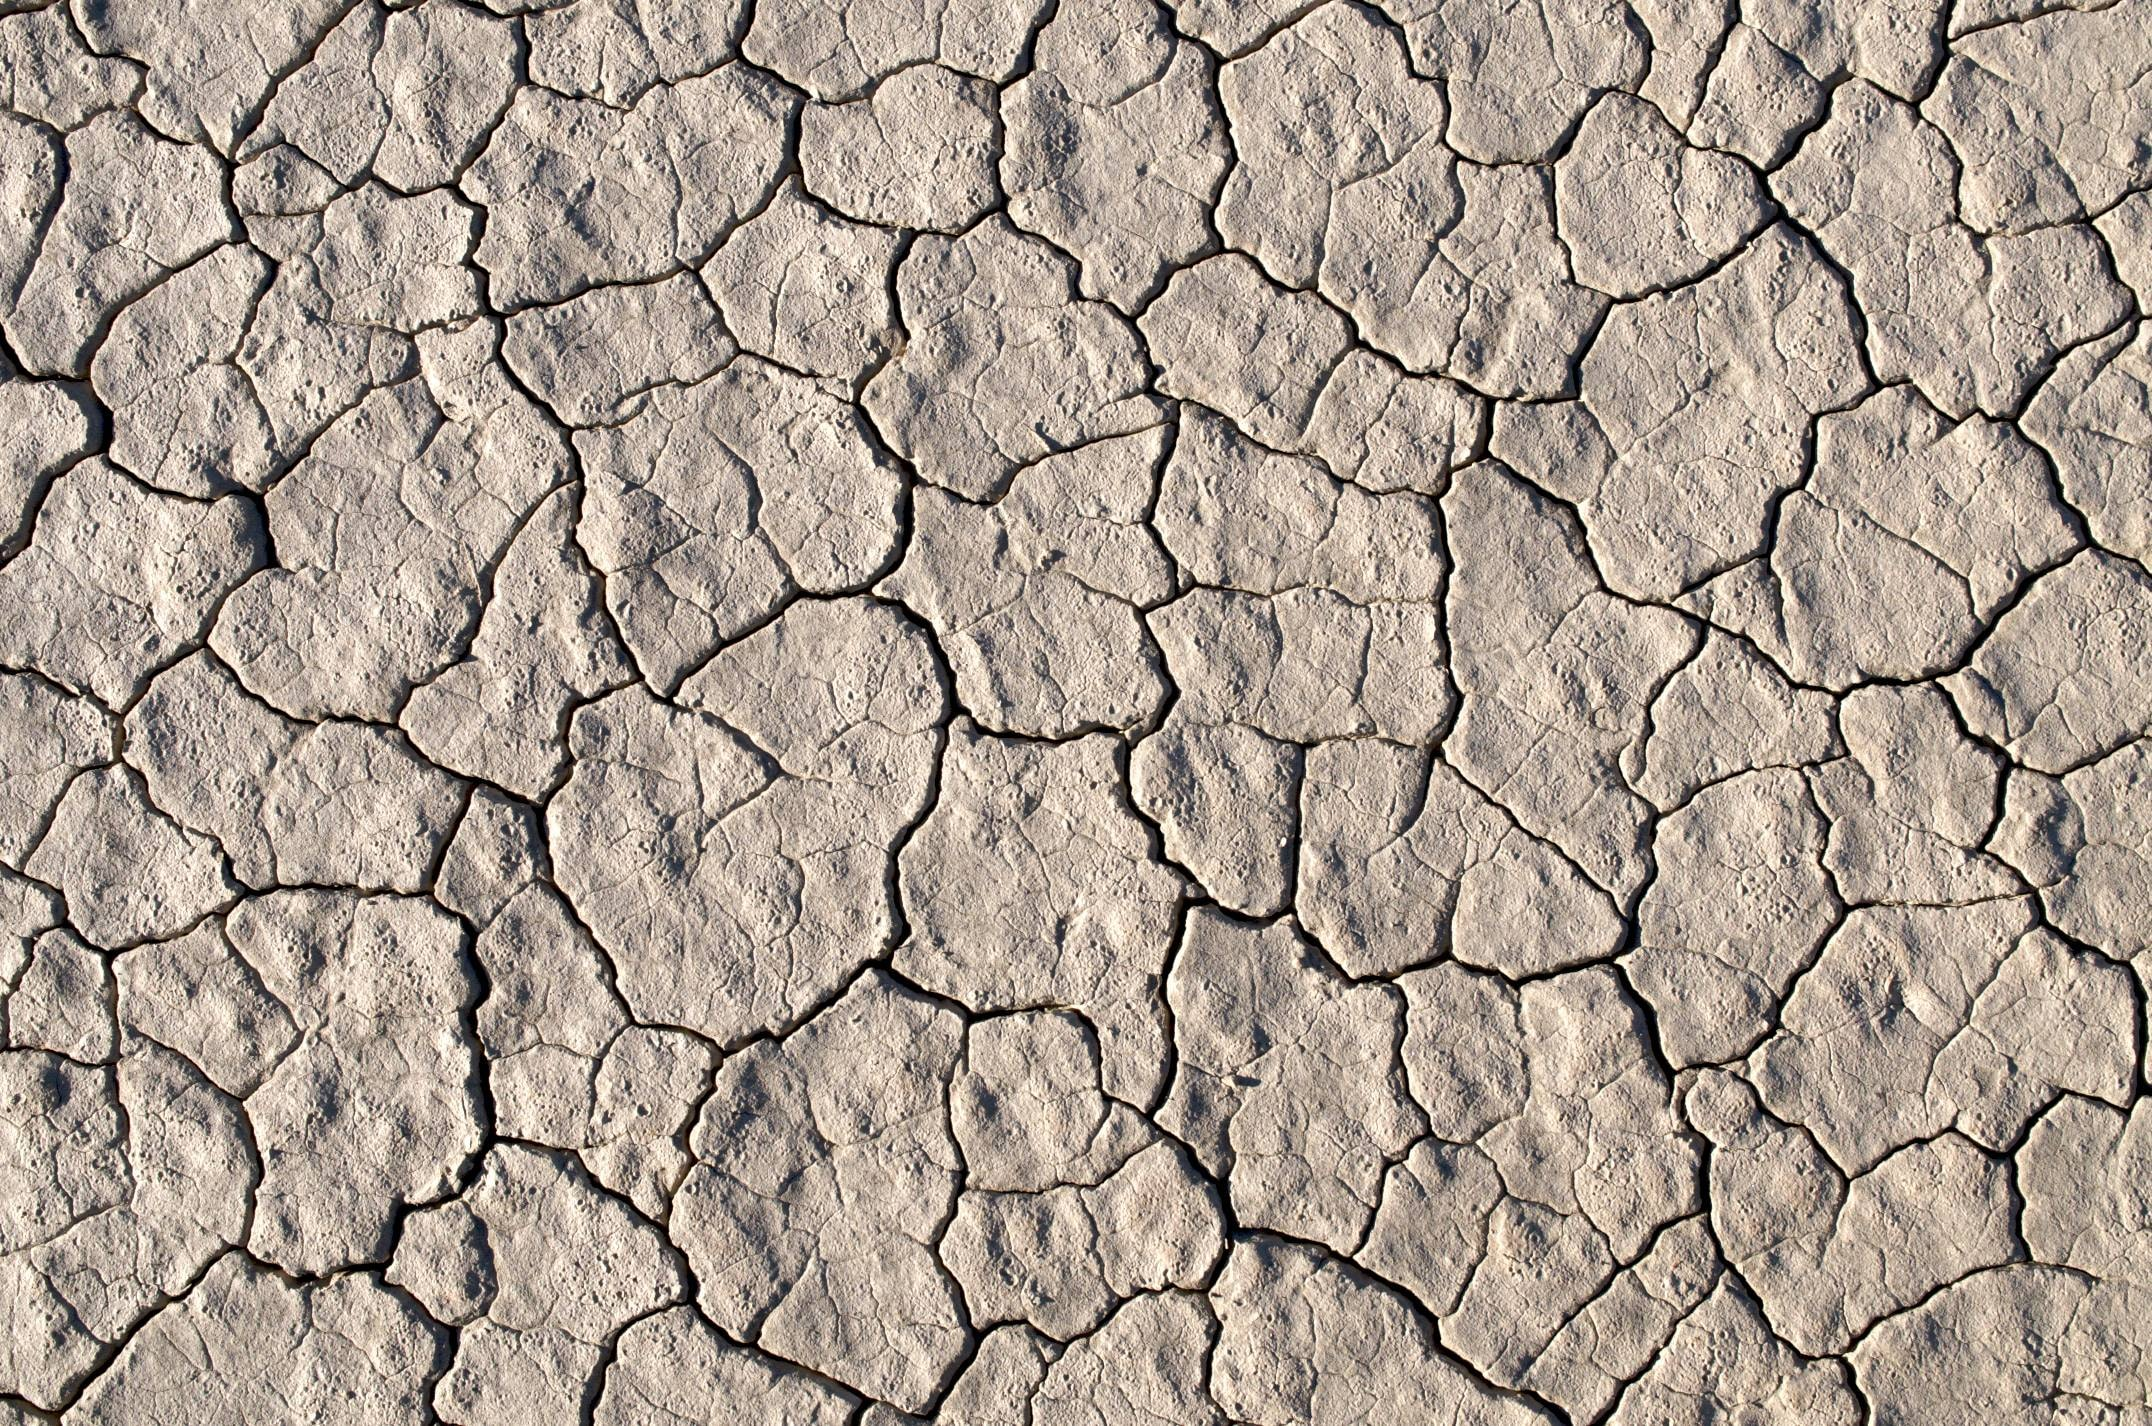 dried up soil